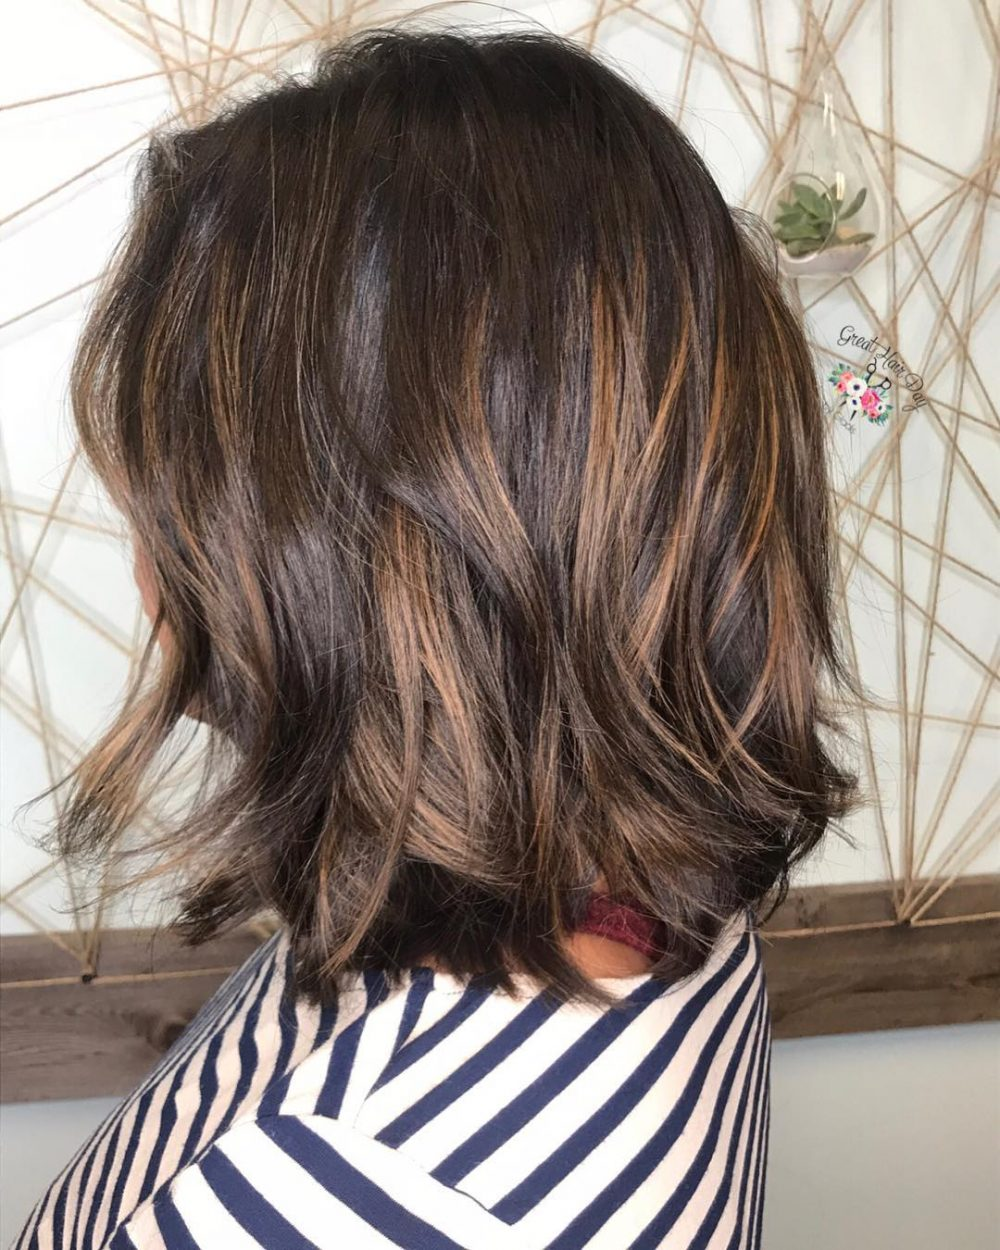 34 Sweetest Caramel Highlights On Light To Dark Brown Hair 2019